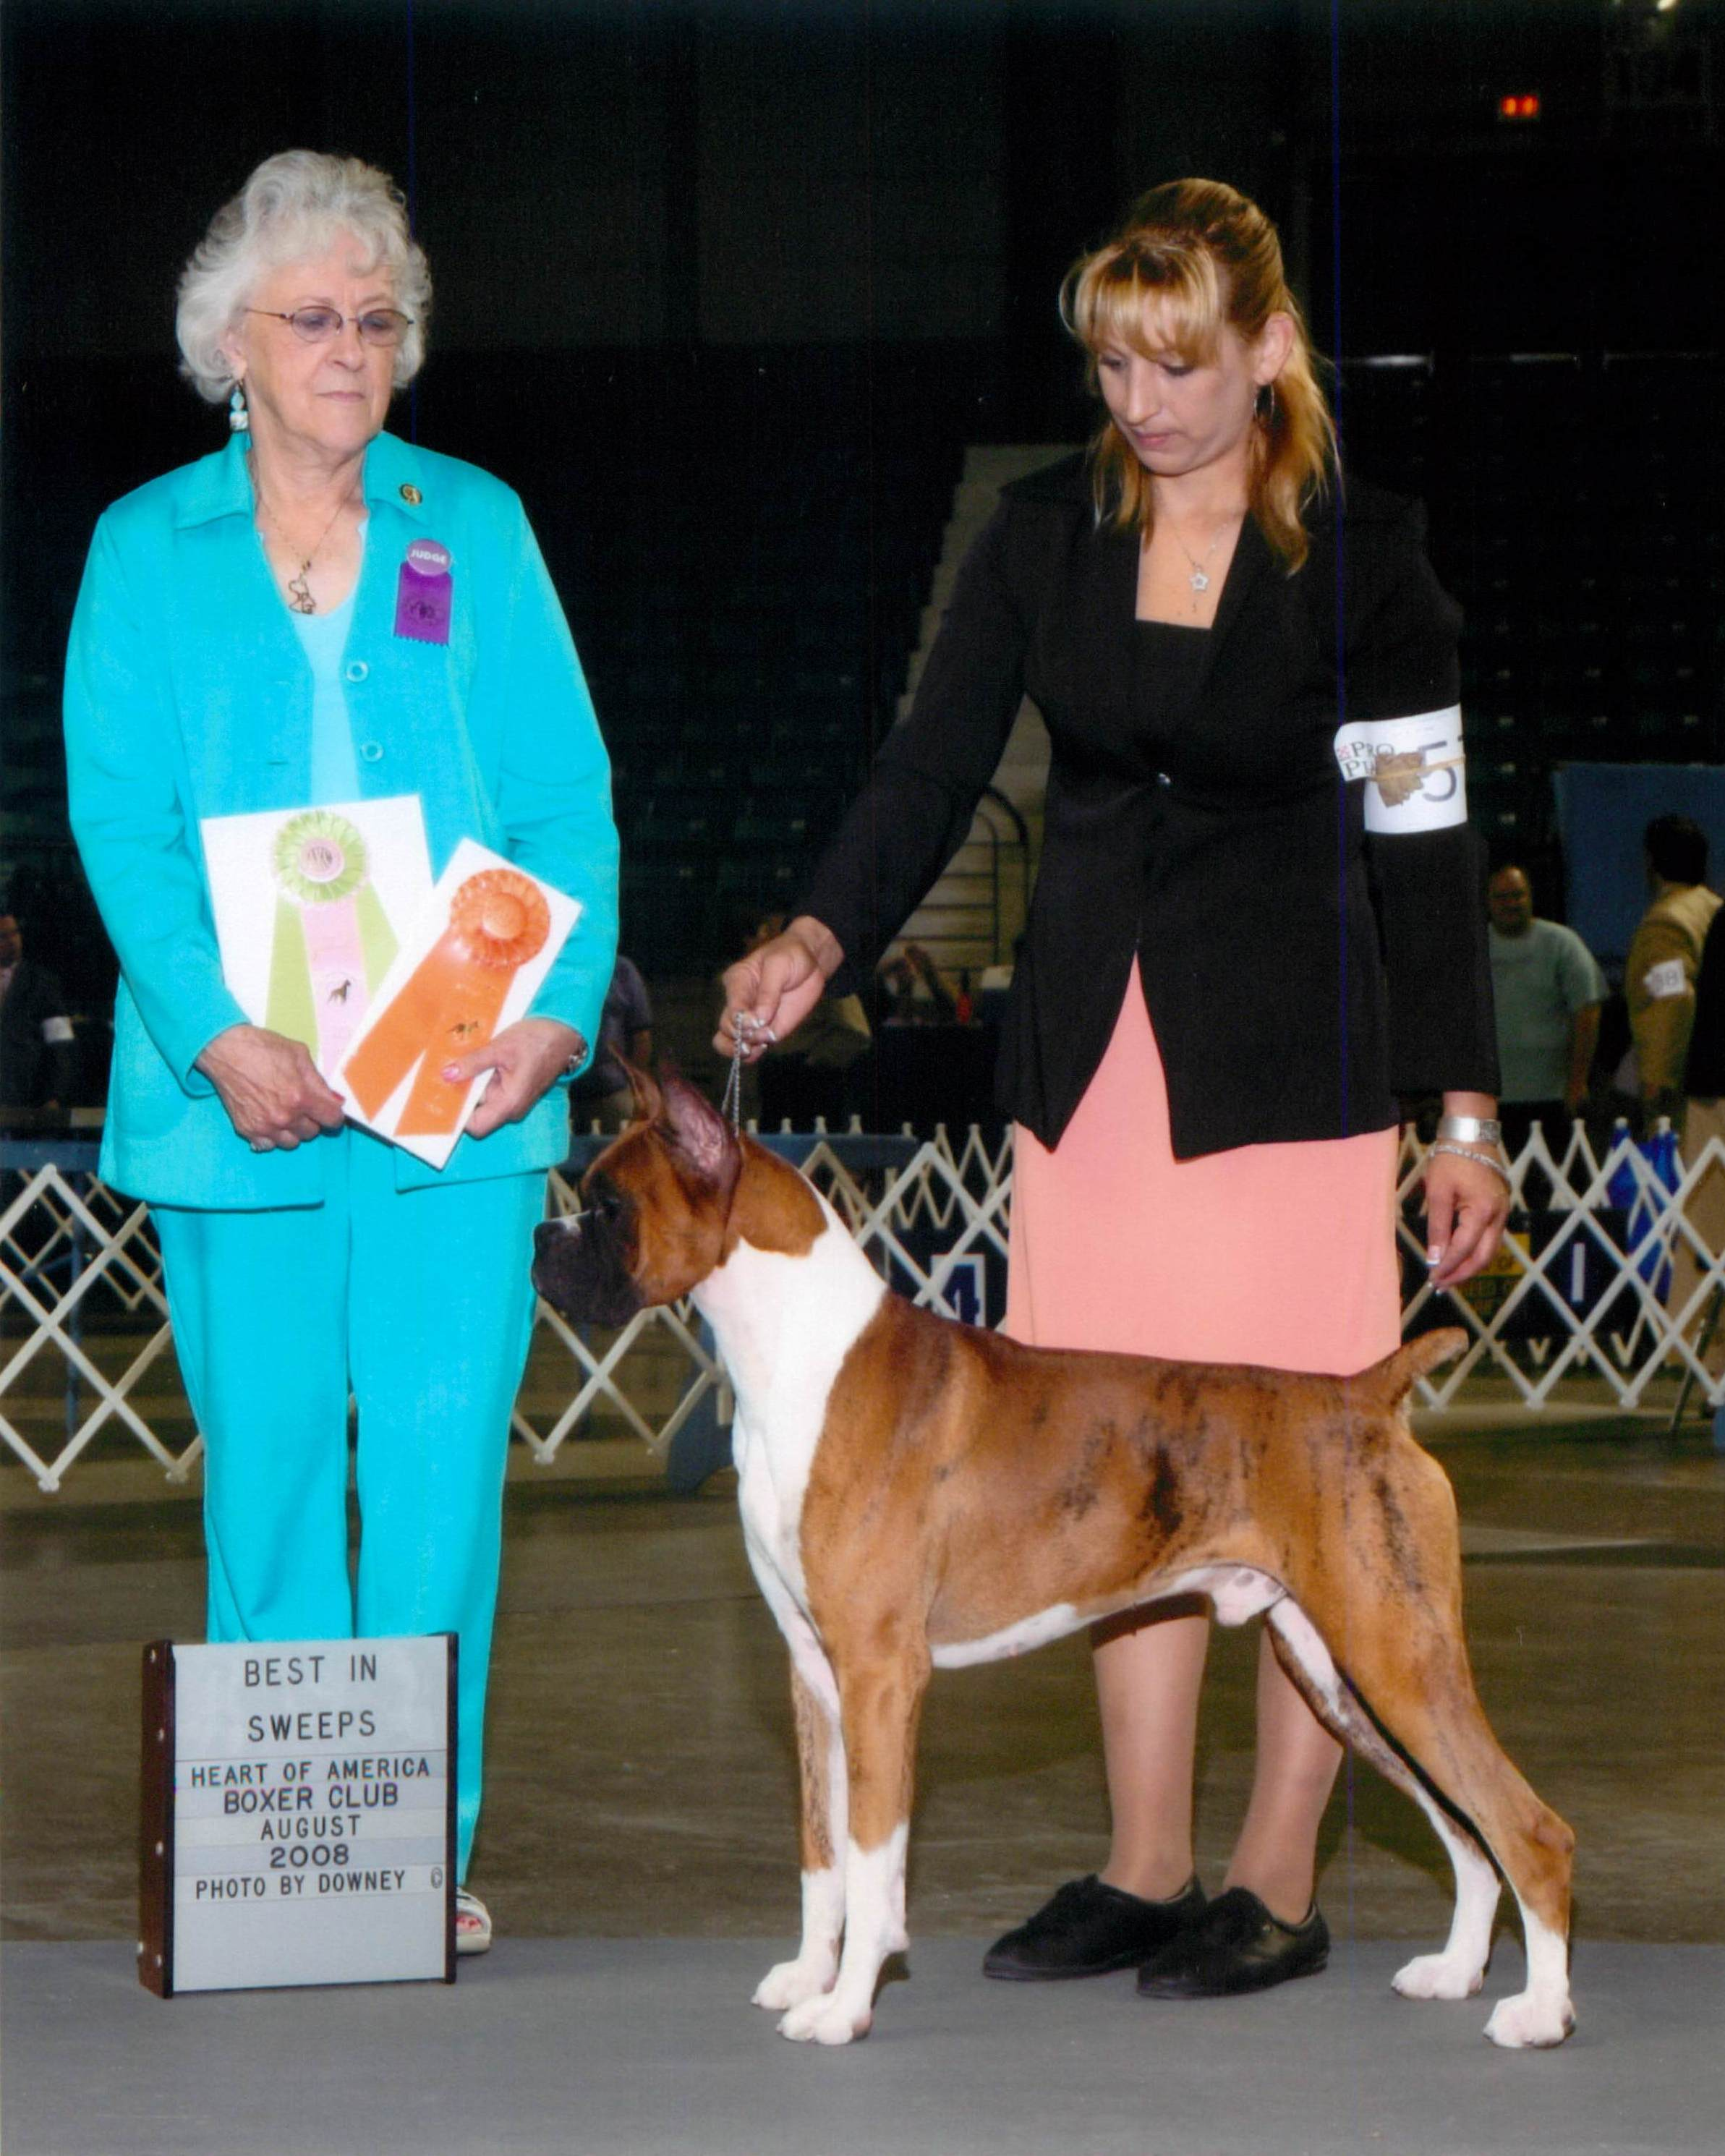 Grand Sweepstakes, Best Junior @ 2008 Specialty Show #2